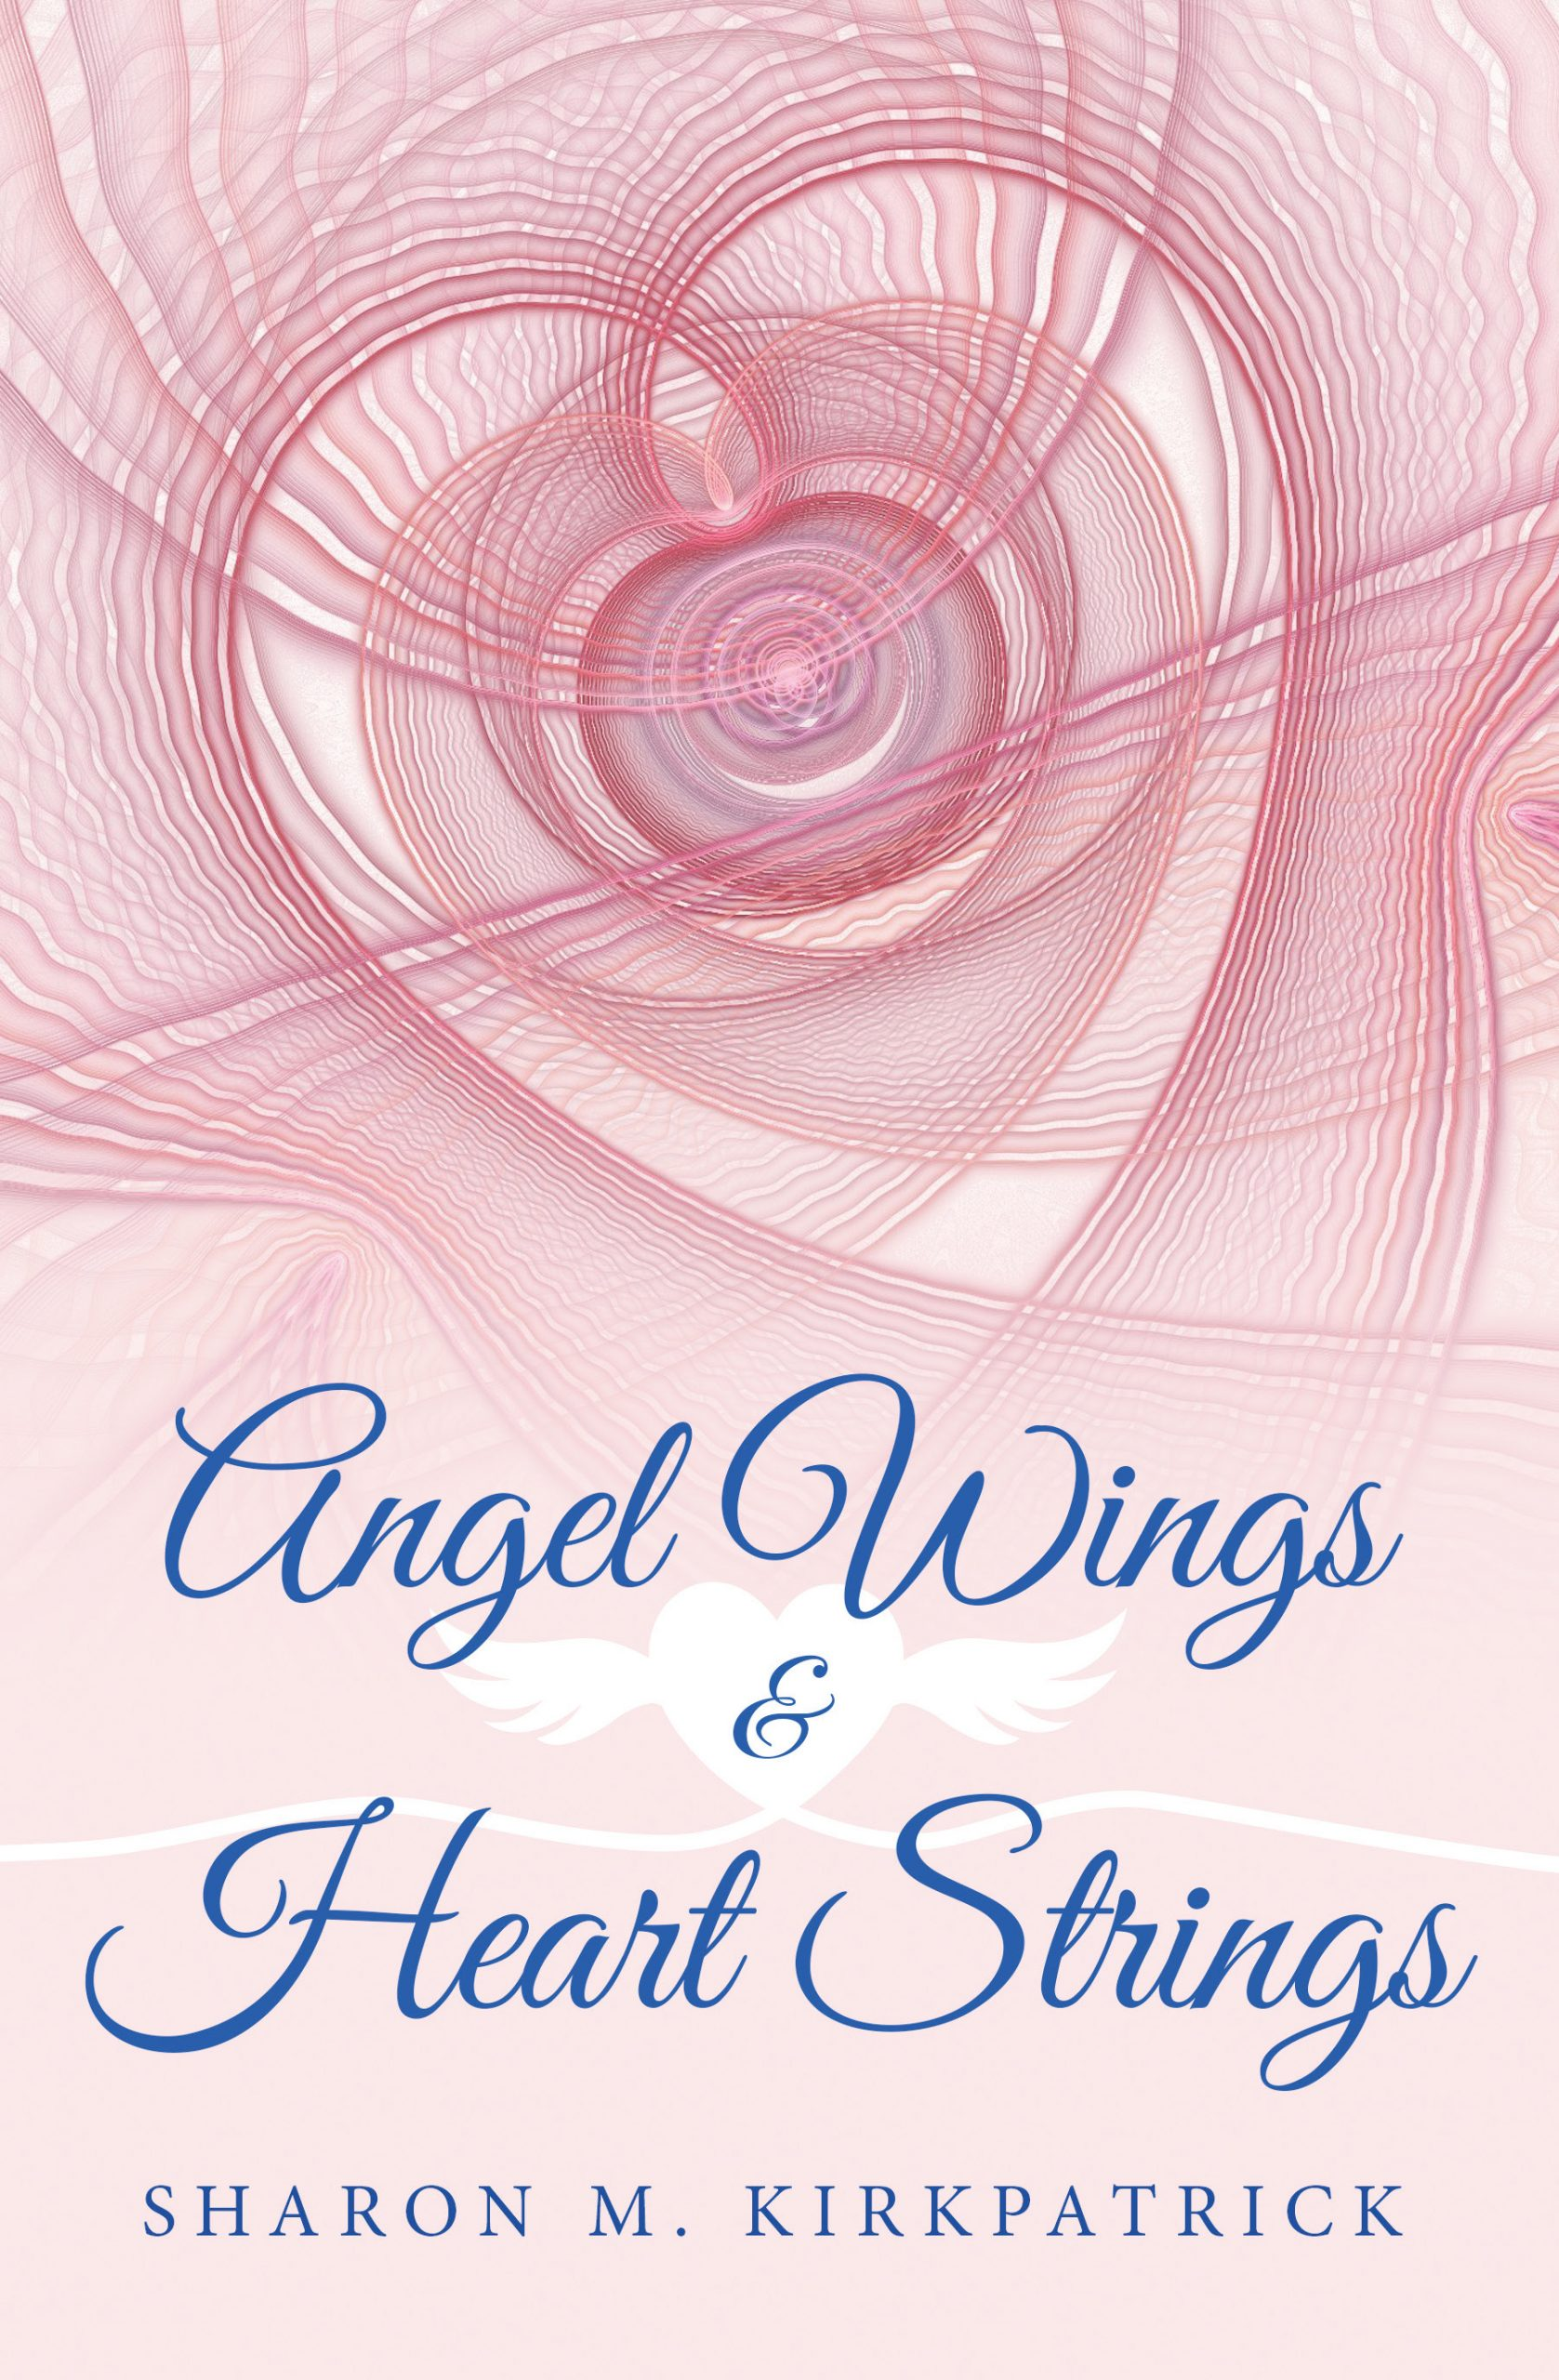 Feathery Glory Showcased in a Book by Sharon Kirkpatrick 1